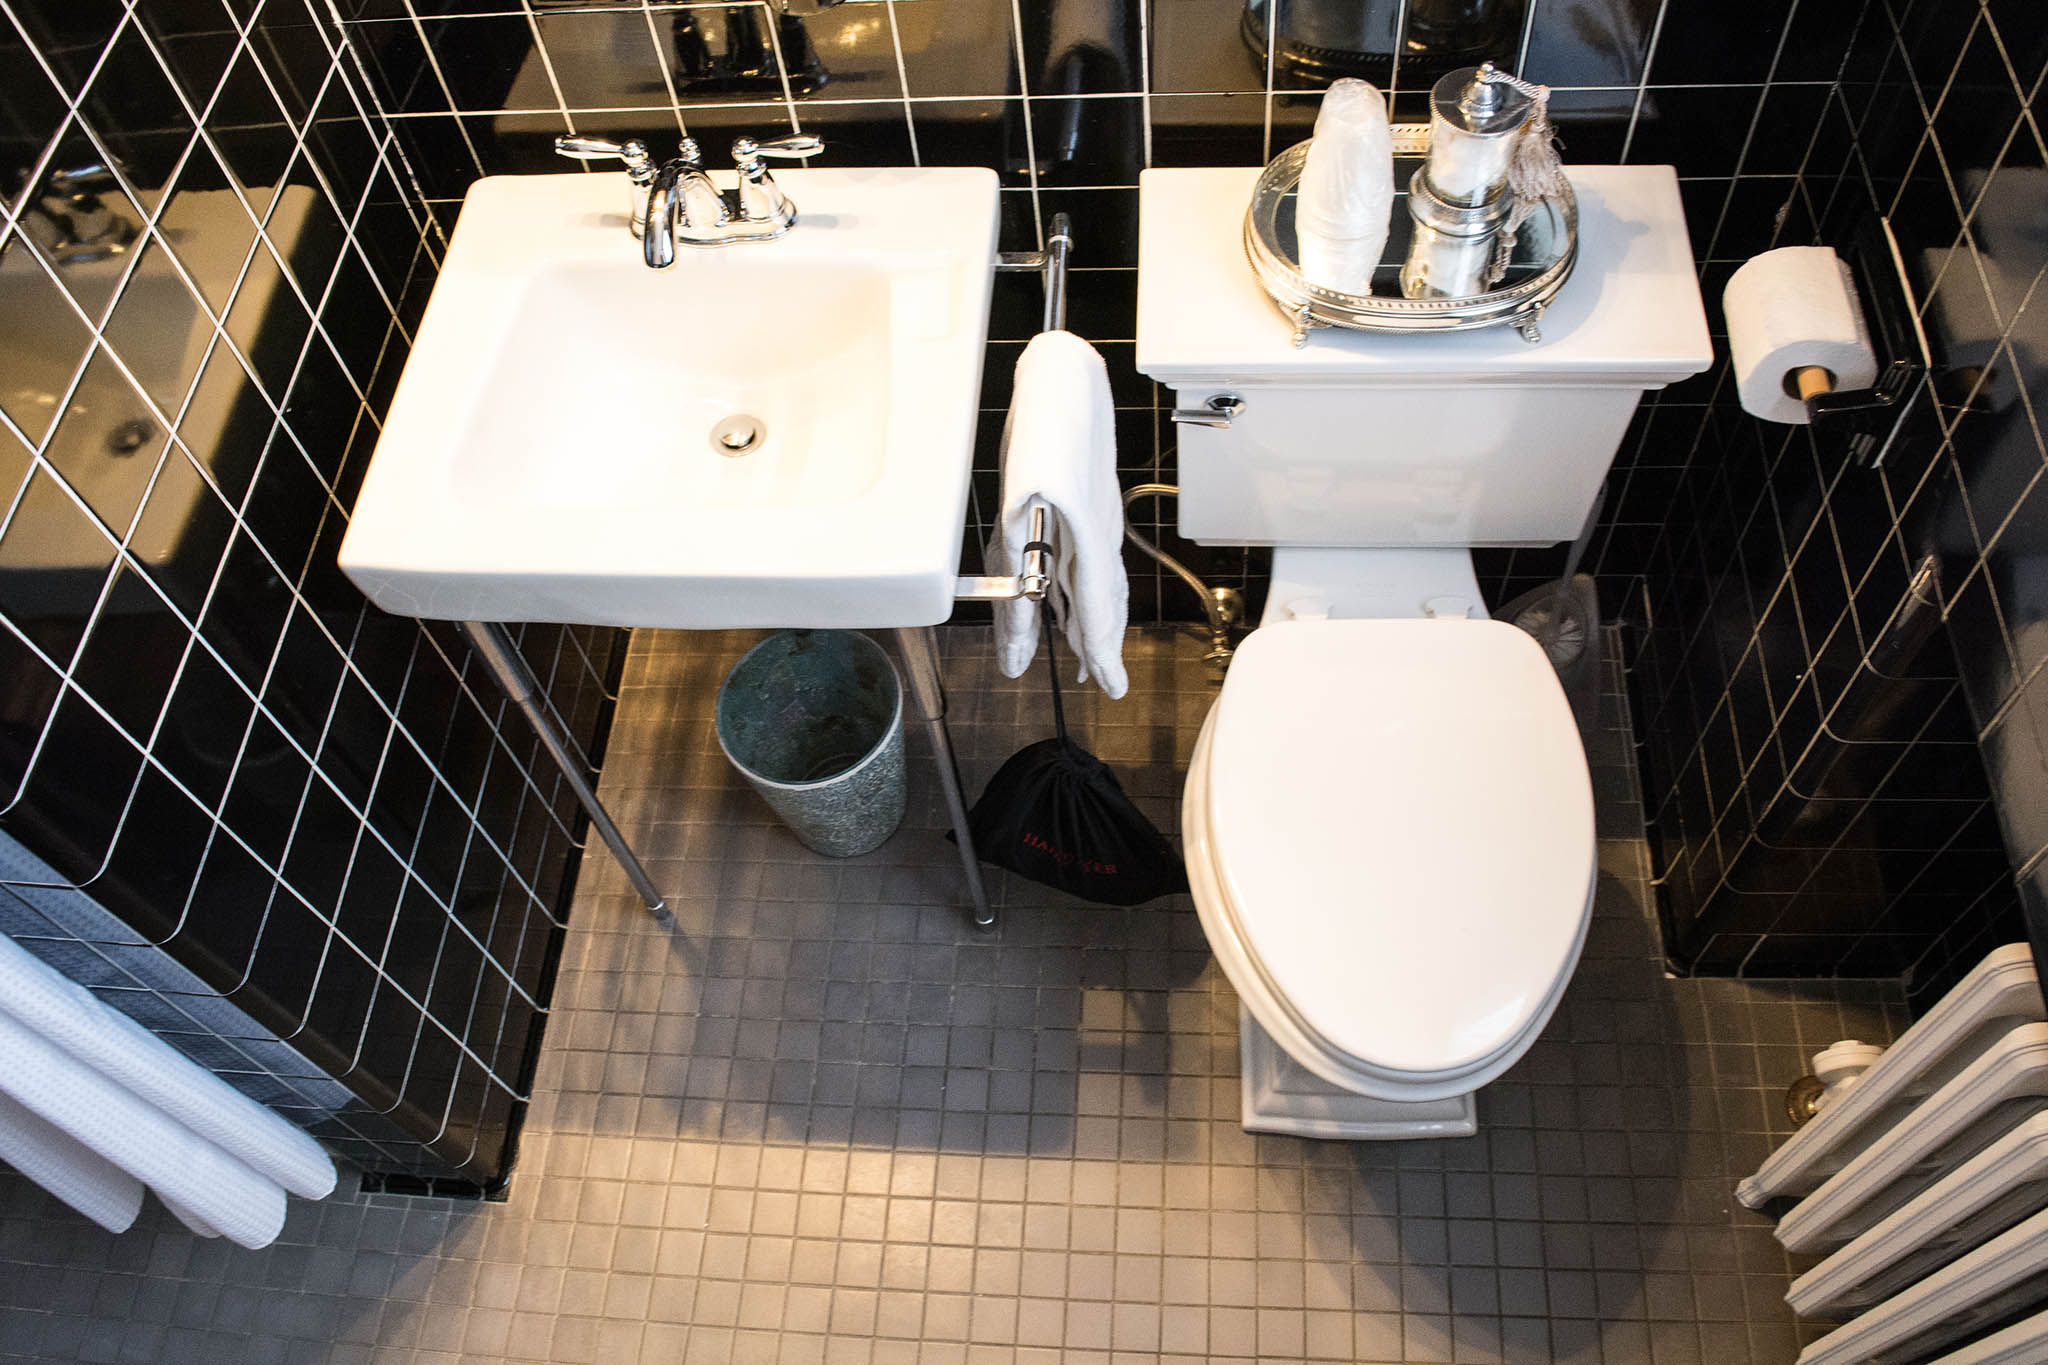 Wilson Suite bathroom. A white sink and toilet, surrounded by black wall tile.